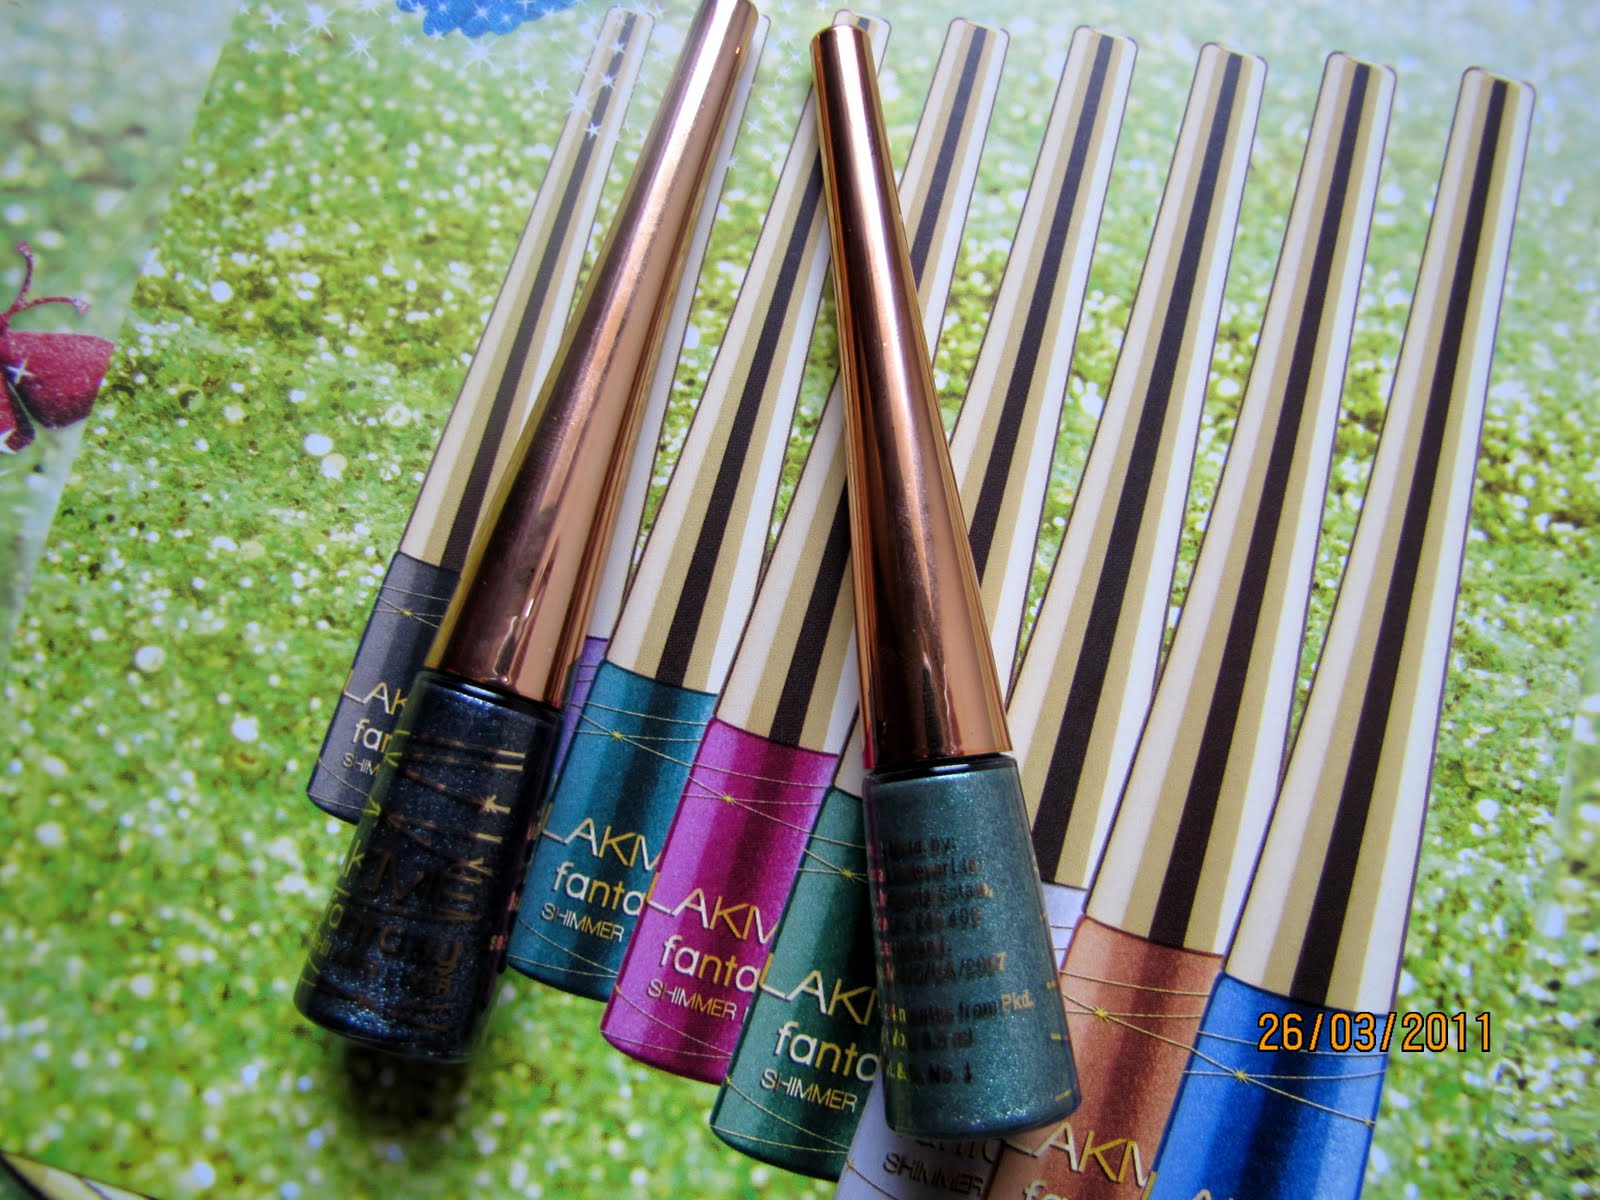 Top 10 Best Liquid Eyeliners of all Time - Hit List of Hot Selling Brands (6)